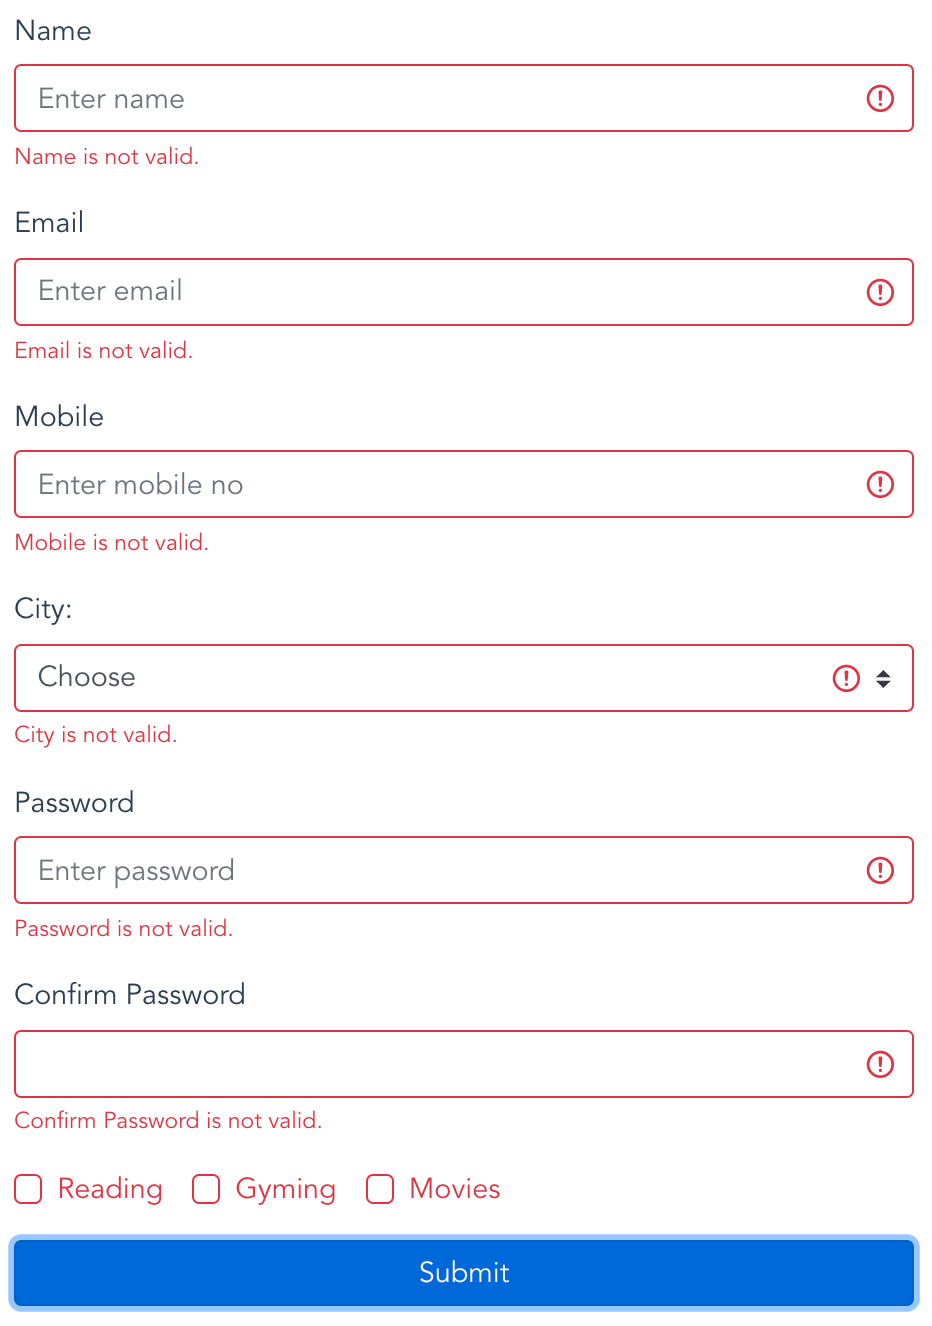 Vue Form Validation Example